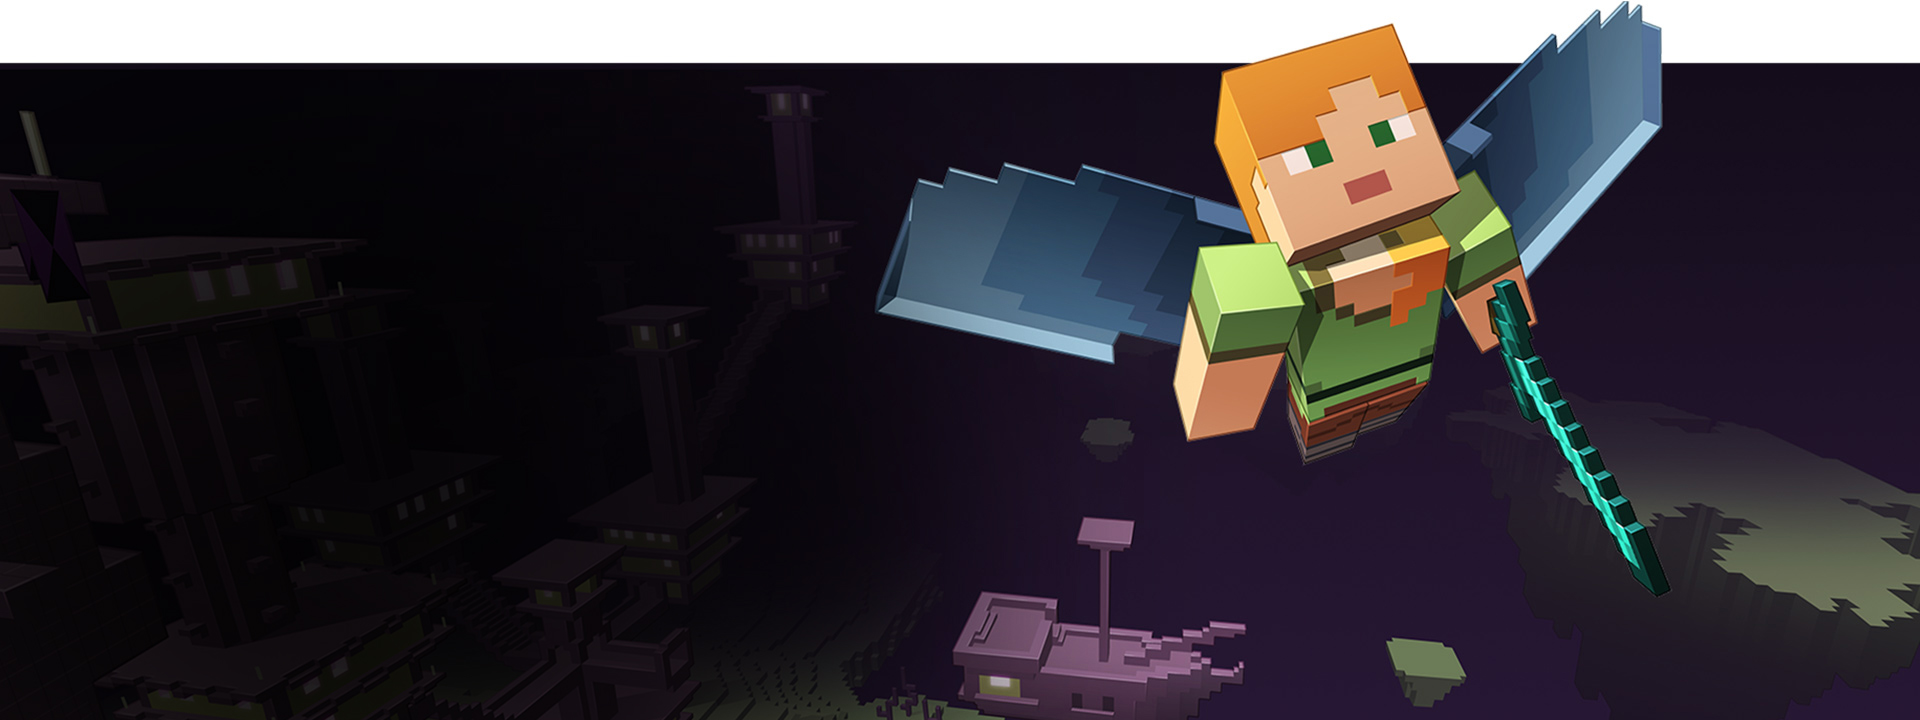 Flying Minecraft Avatar